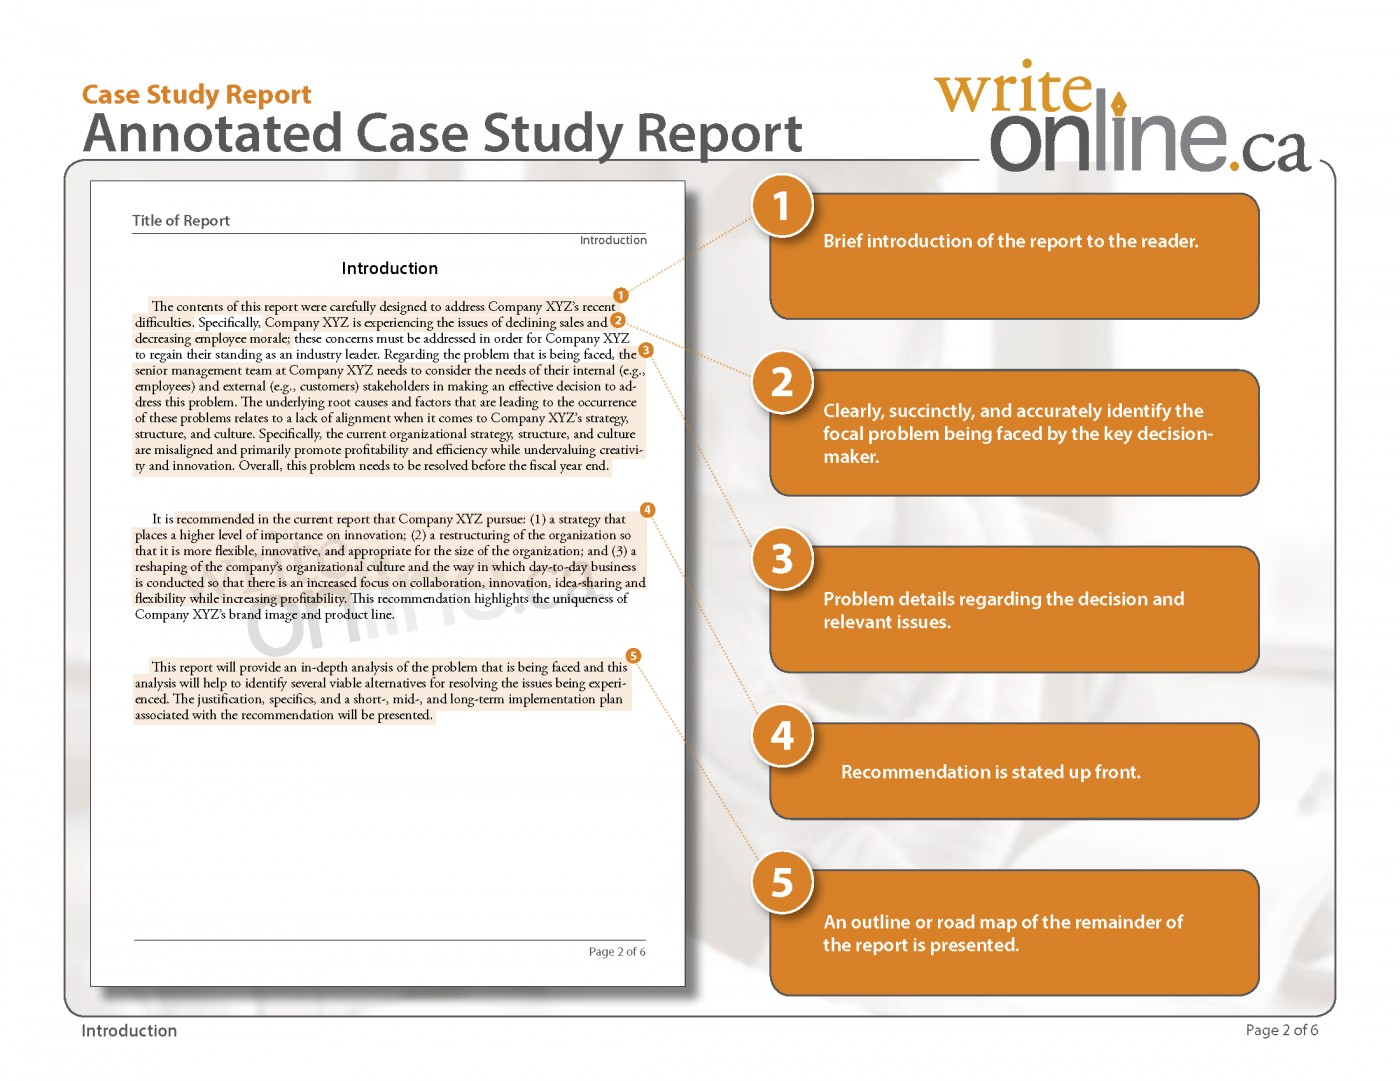 015 Casestudy Annotatedfull Page 2 Research Paper Parts Of Staggering Pdf Preliminary A Chapter 1 1-5 1400